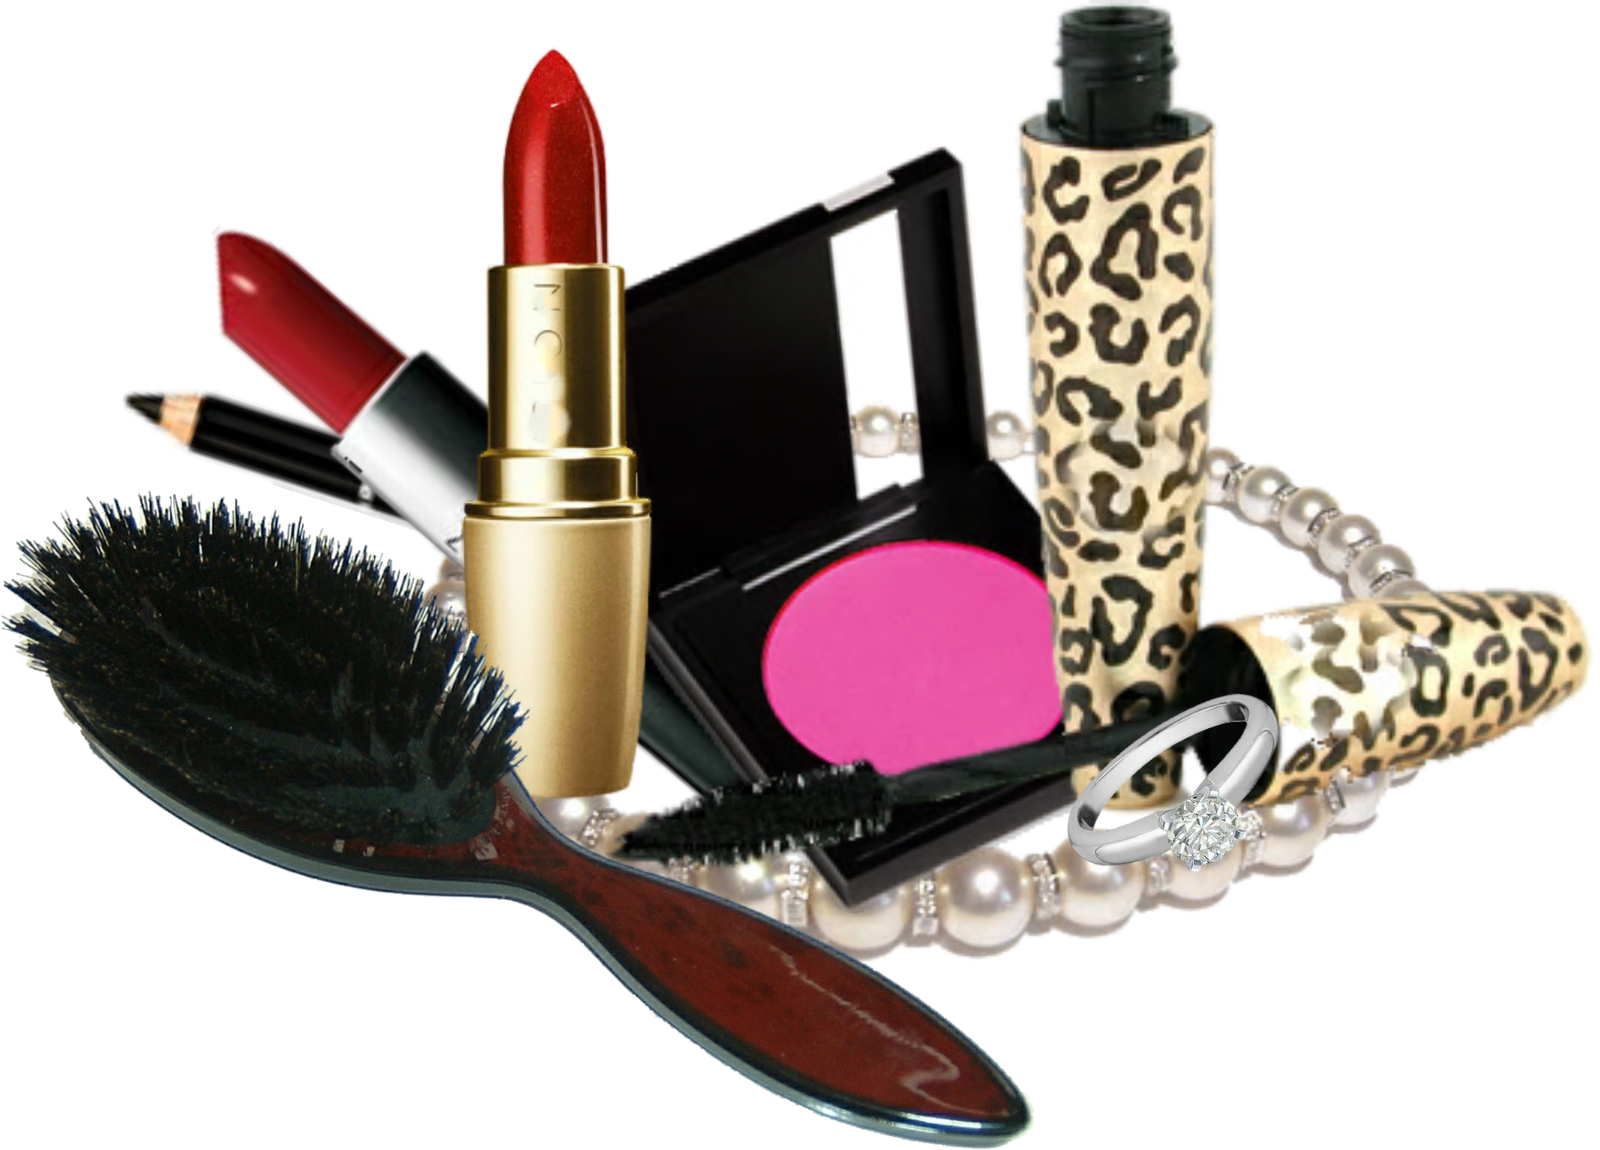 makeup kit png